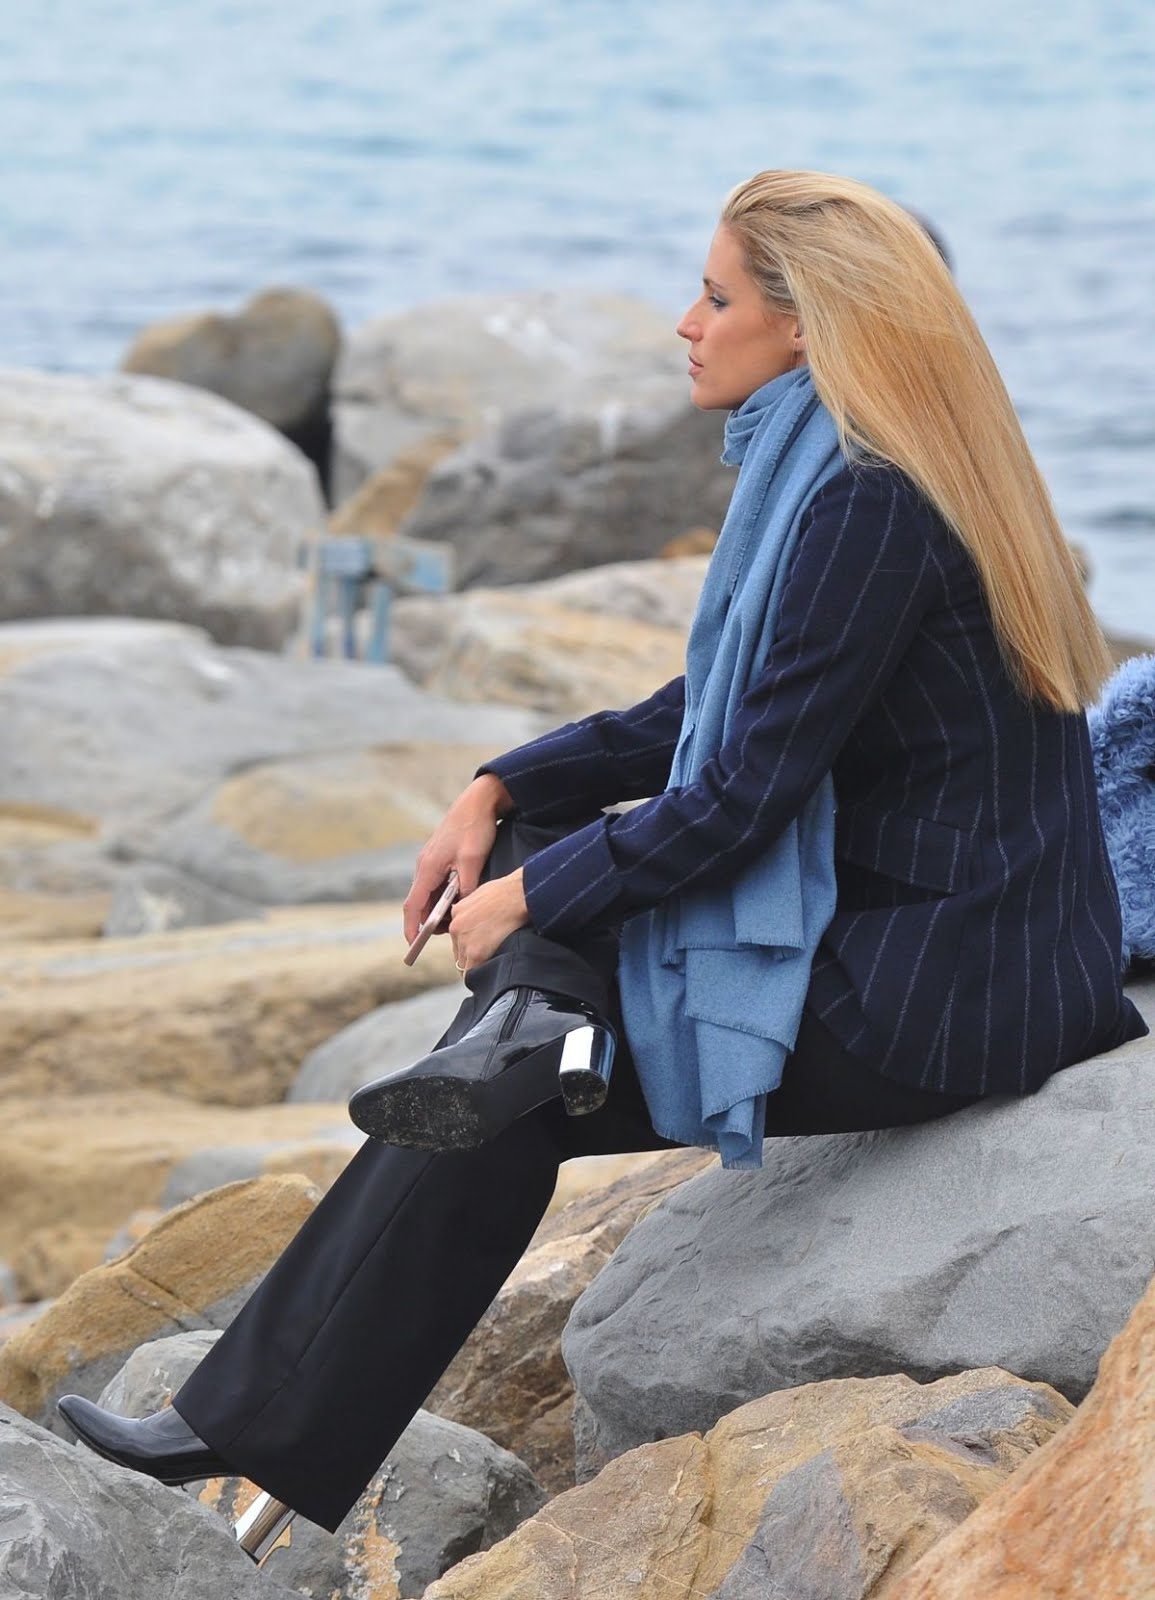 Michelle Hunziker Out For A Walk By The Sea In Sanremo